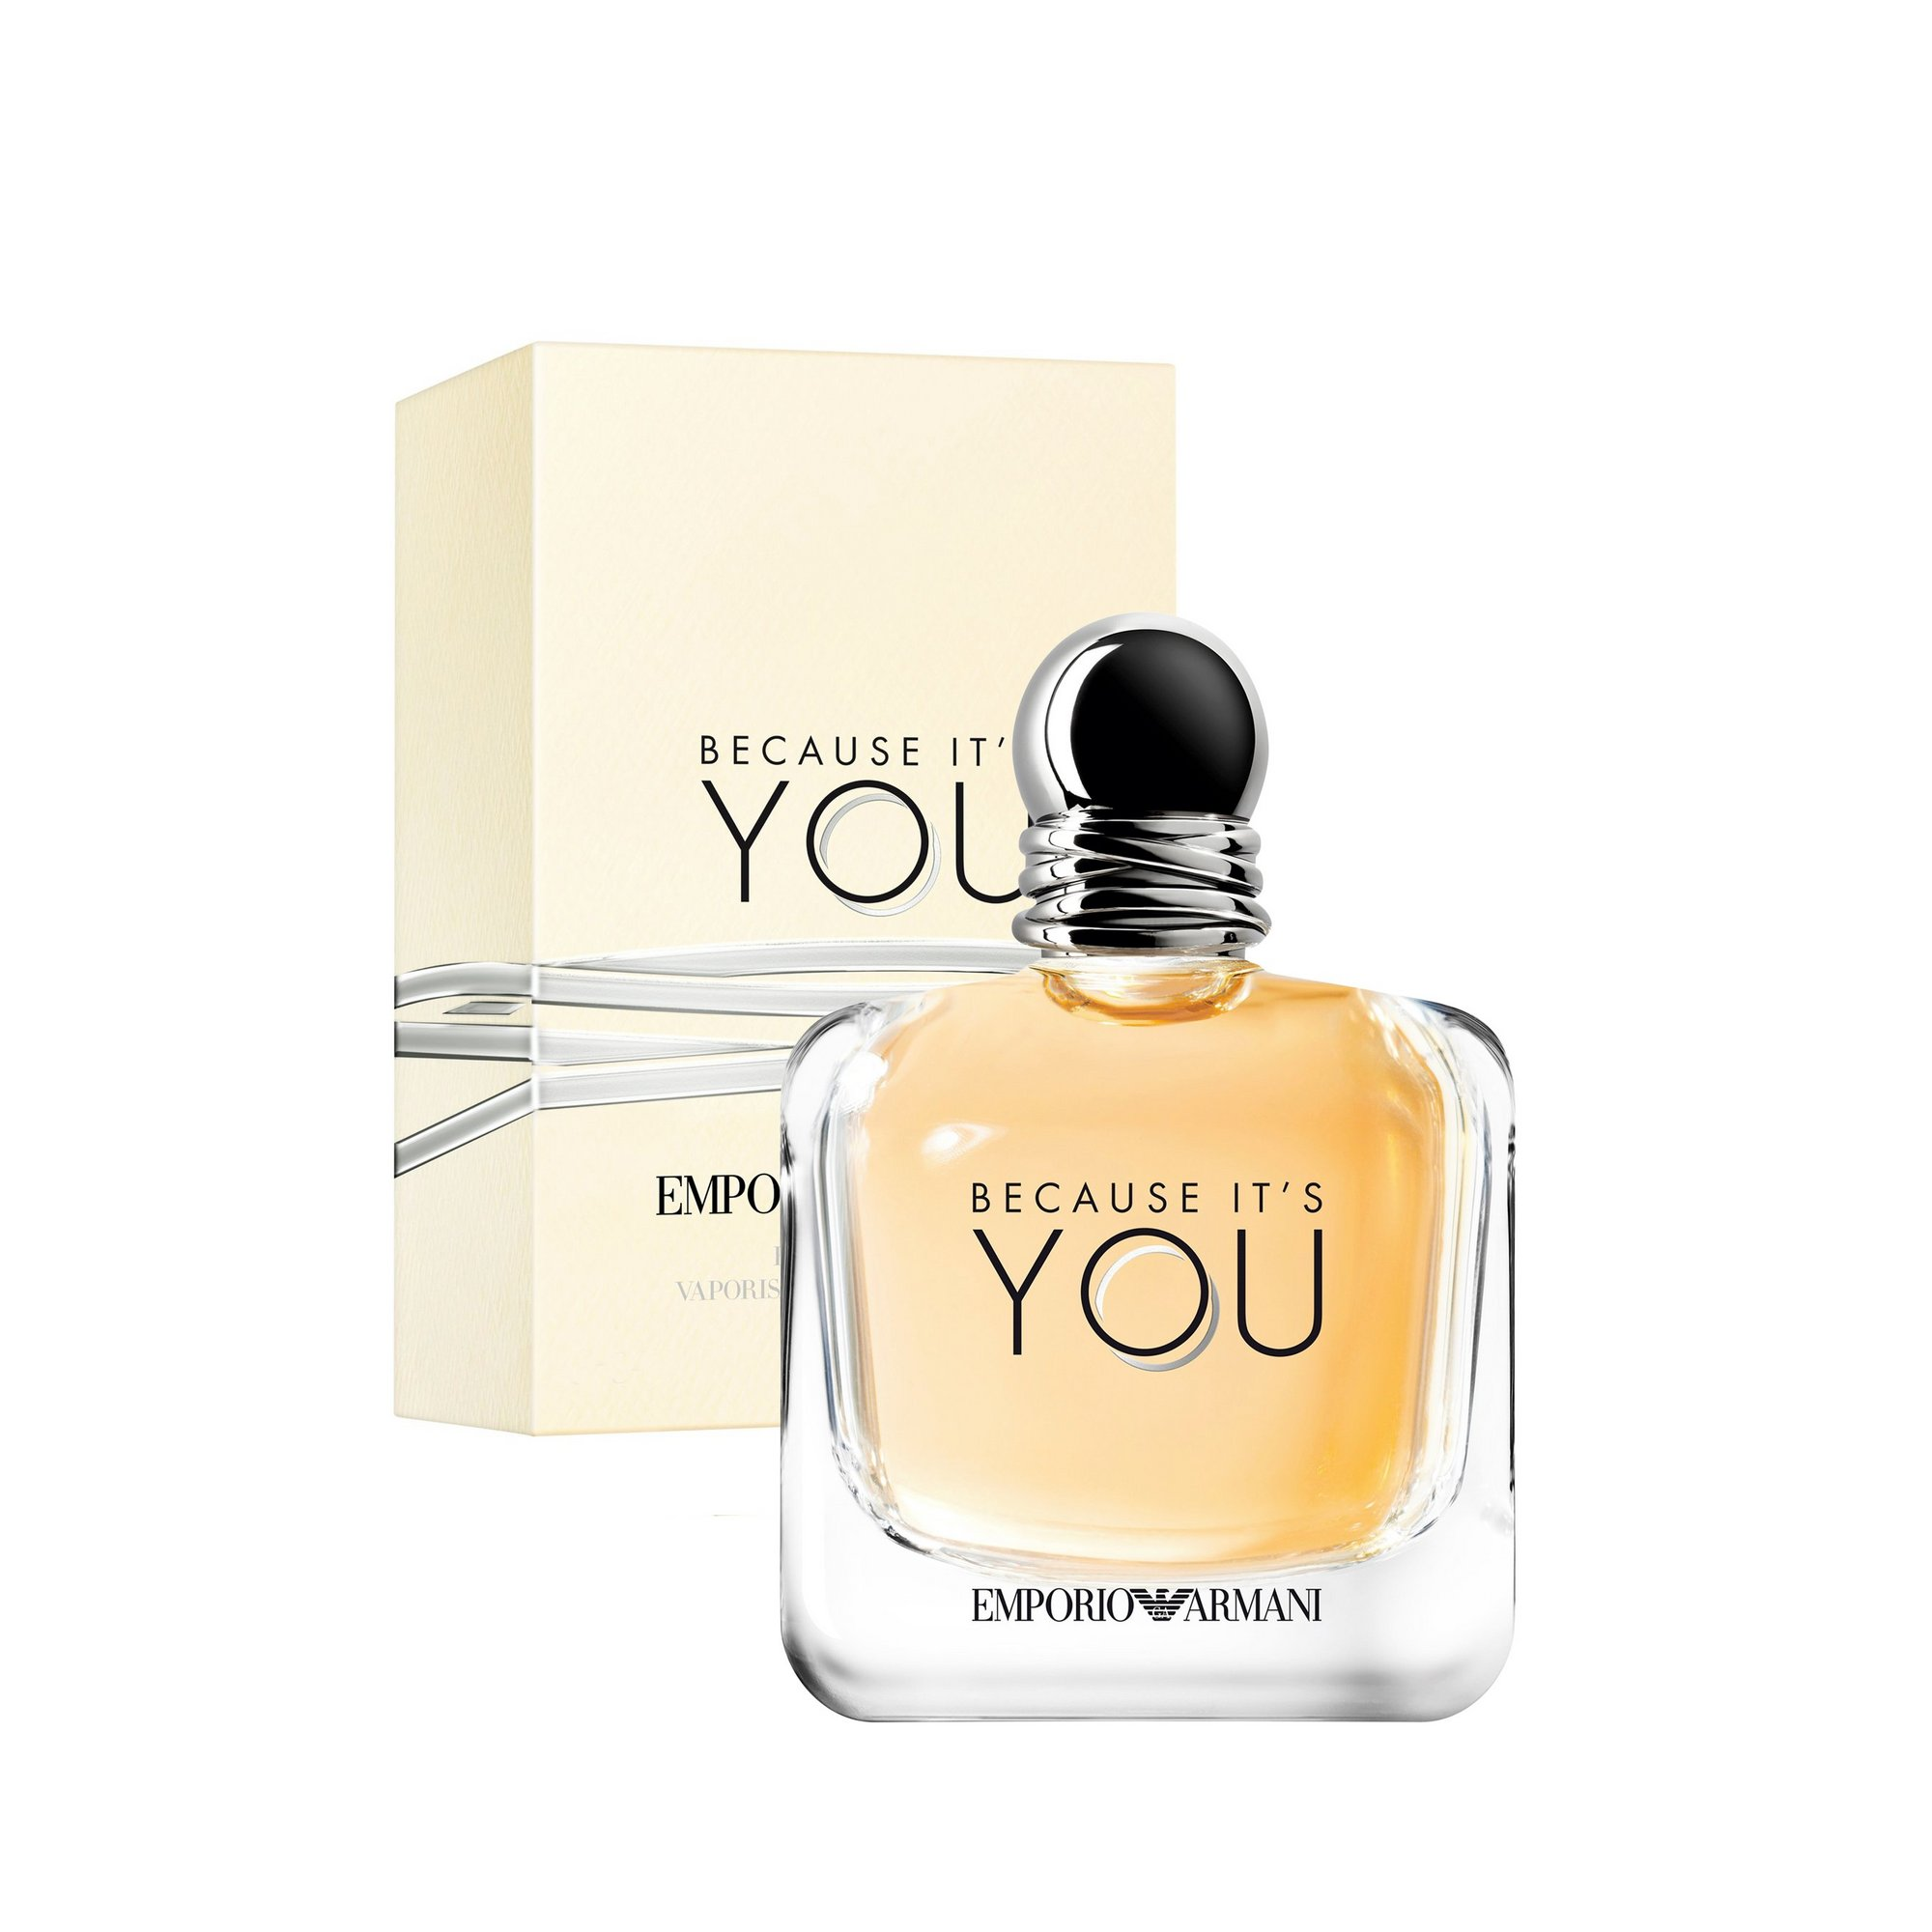 Image of Emporio Armani Because Its You 100ml EDP